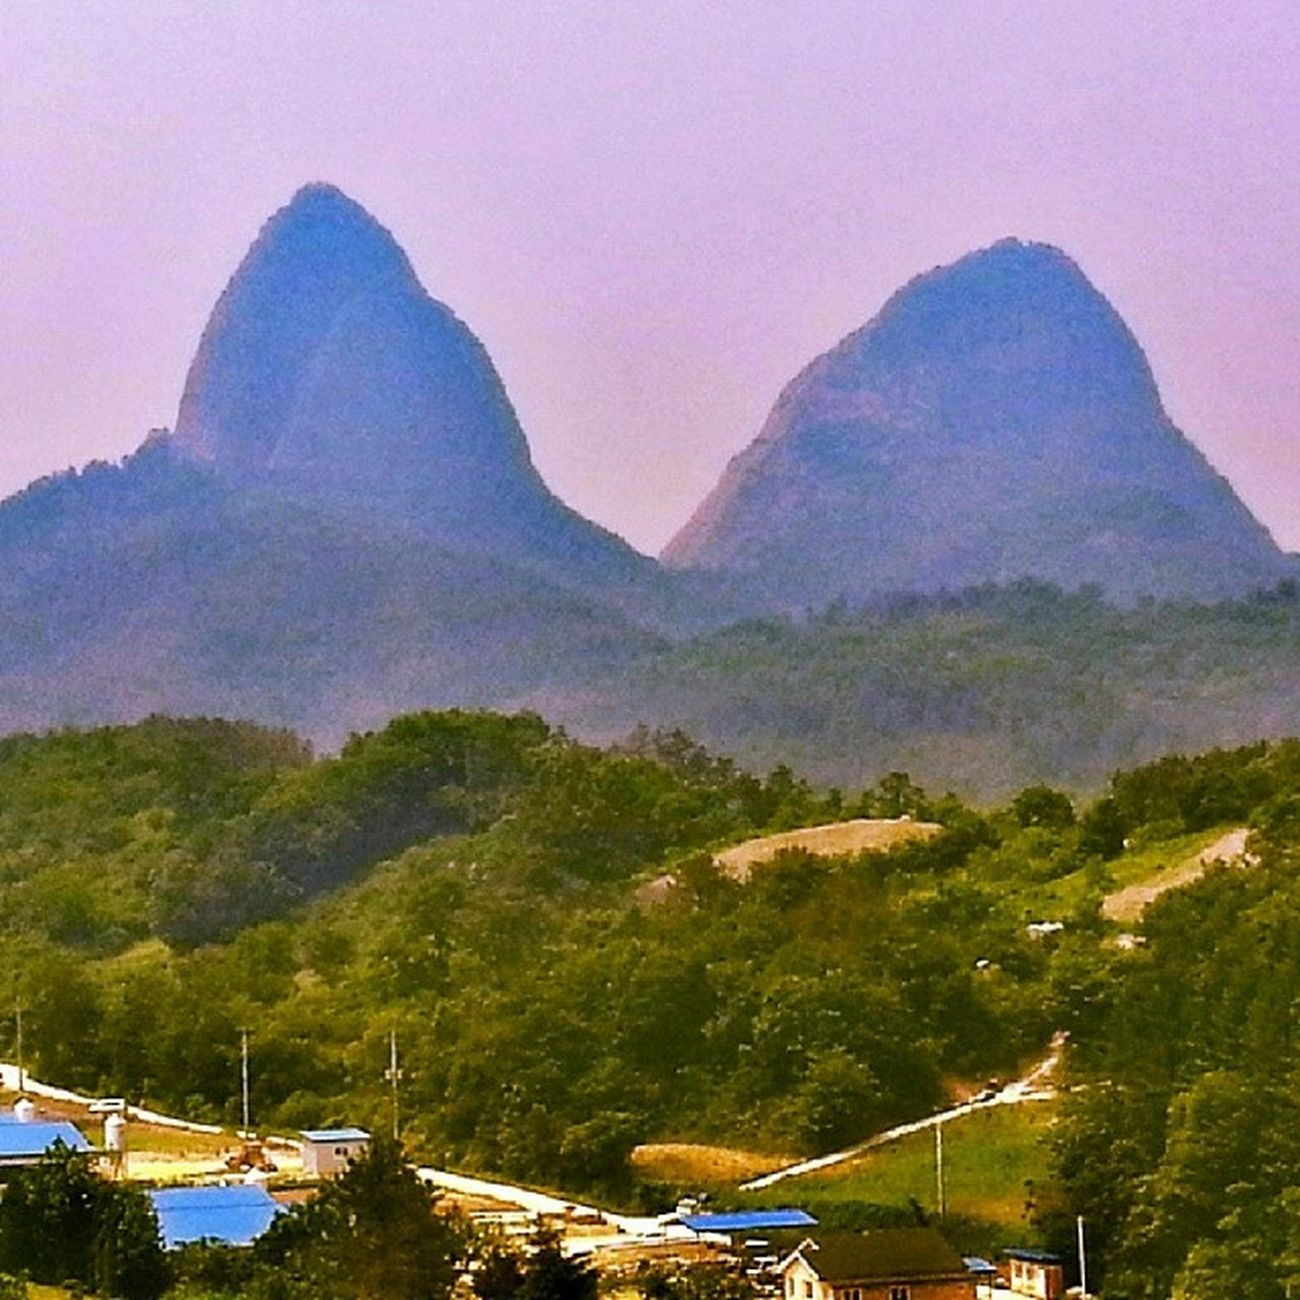 마이산(馬耳山) Mt. Mai, Jinan Korea  마이산  진안  산 Maisan mountain Jinan